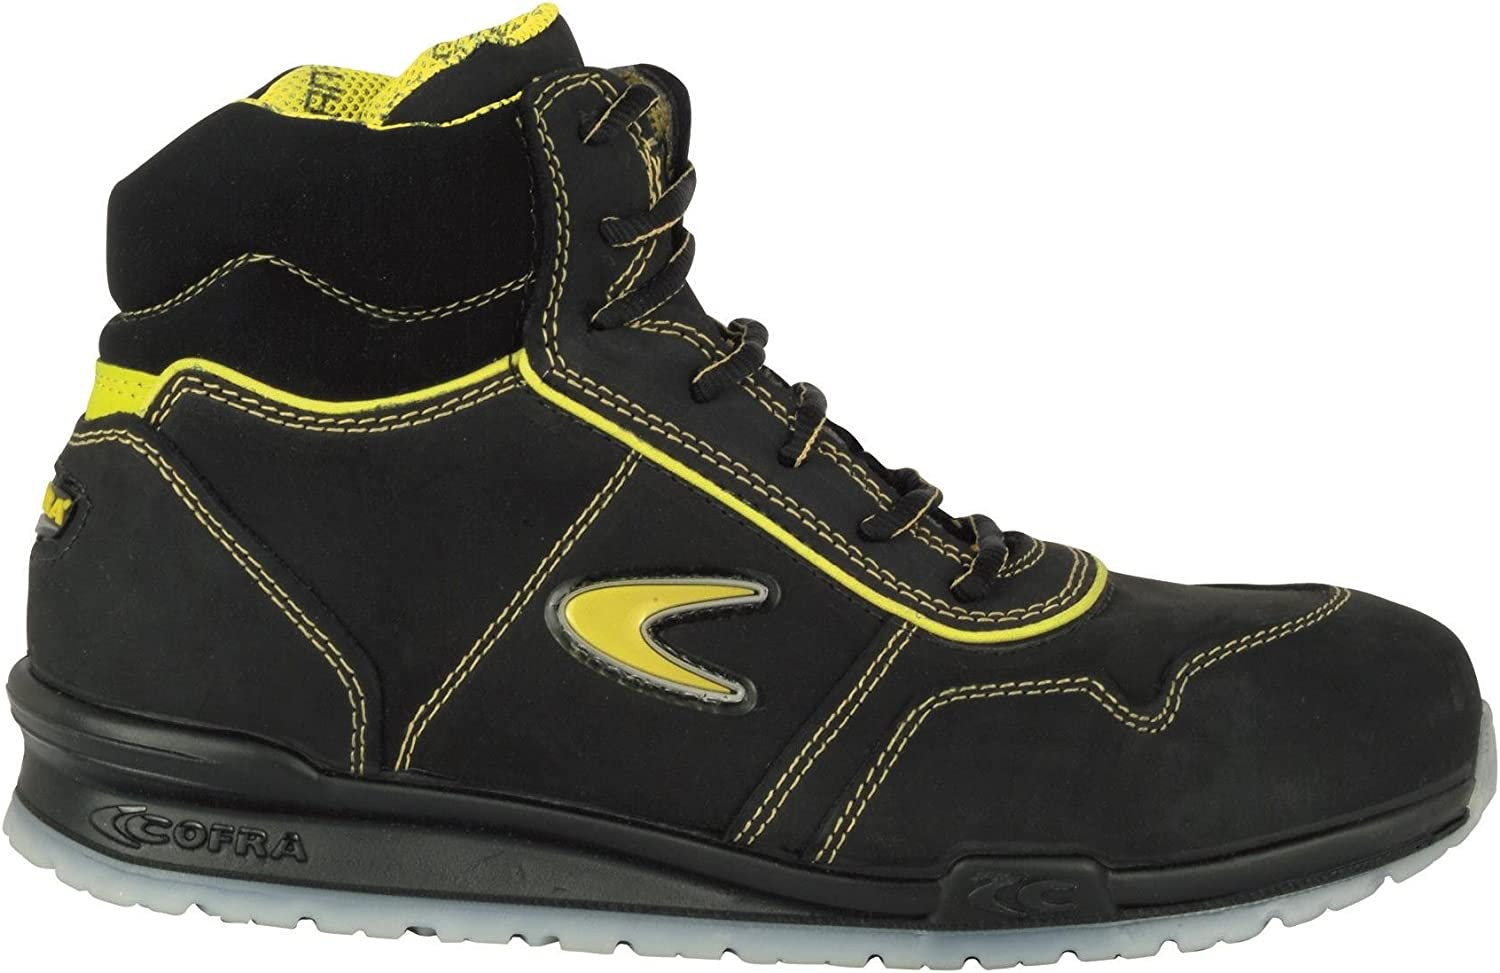 Cofra 78470-002.W46 Size 46 S3 SRC  Eagan  Safety shoes - Black Yellow - EN safety certified